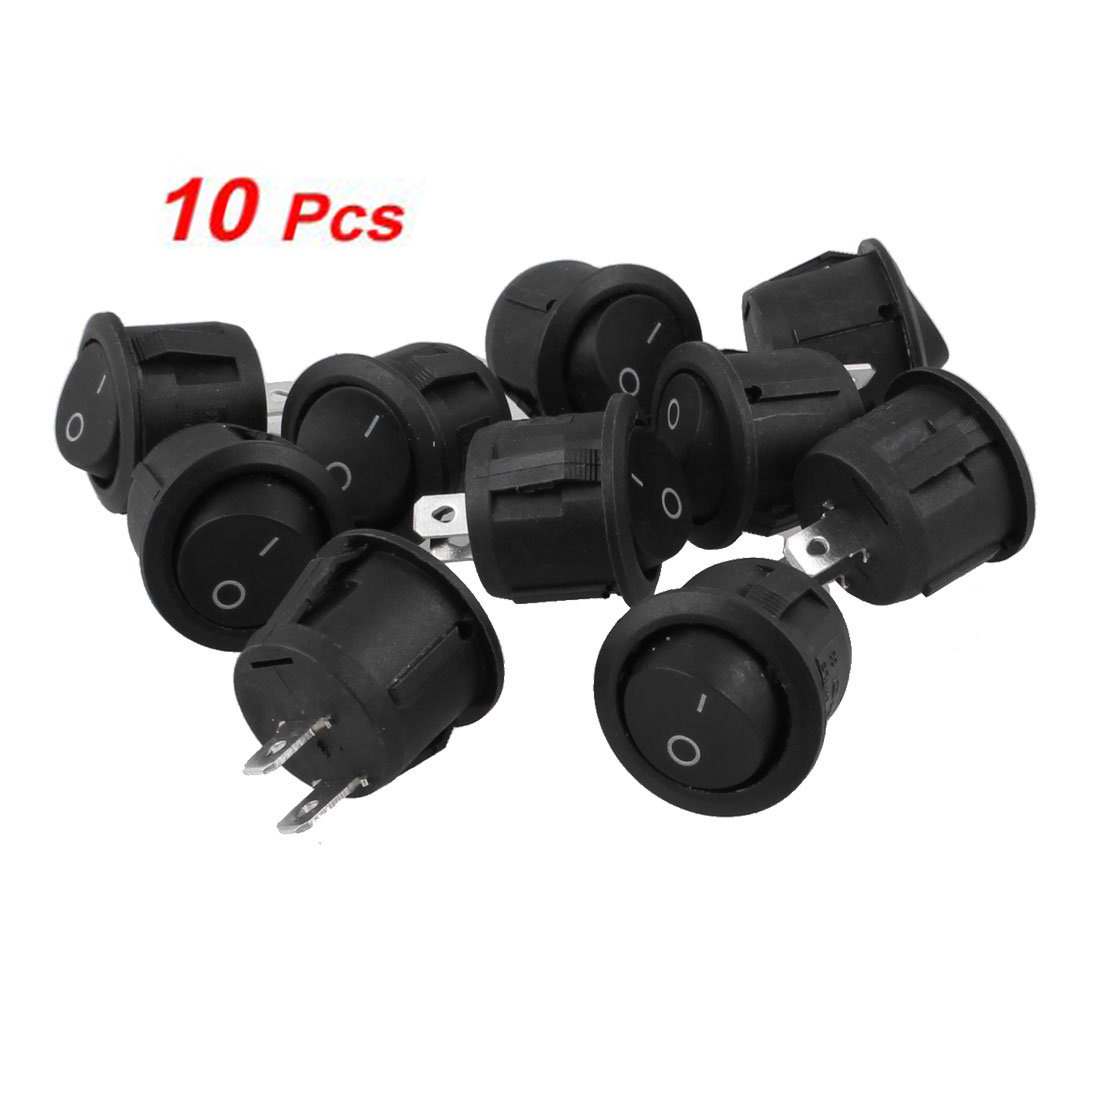 Promotion! 10Pcs AC 6A 10A 250V On Off Snap in SPST Round Boat Rocker Switch Black 10pcs ac 250v 3a 2 pin on off i o spst snap in mini boat rocker switch 10 15mm